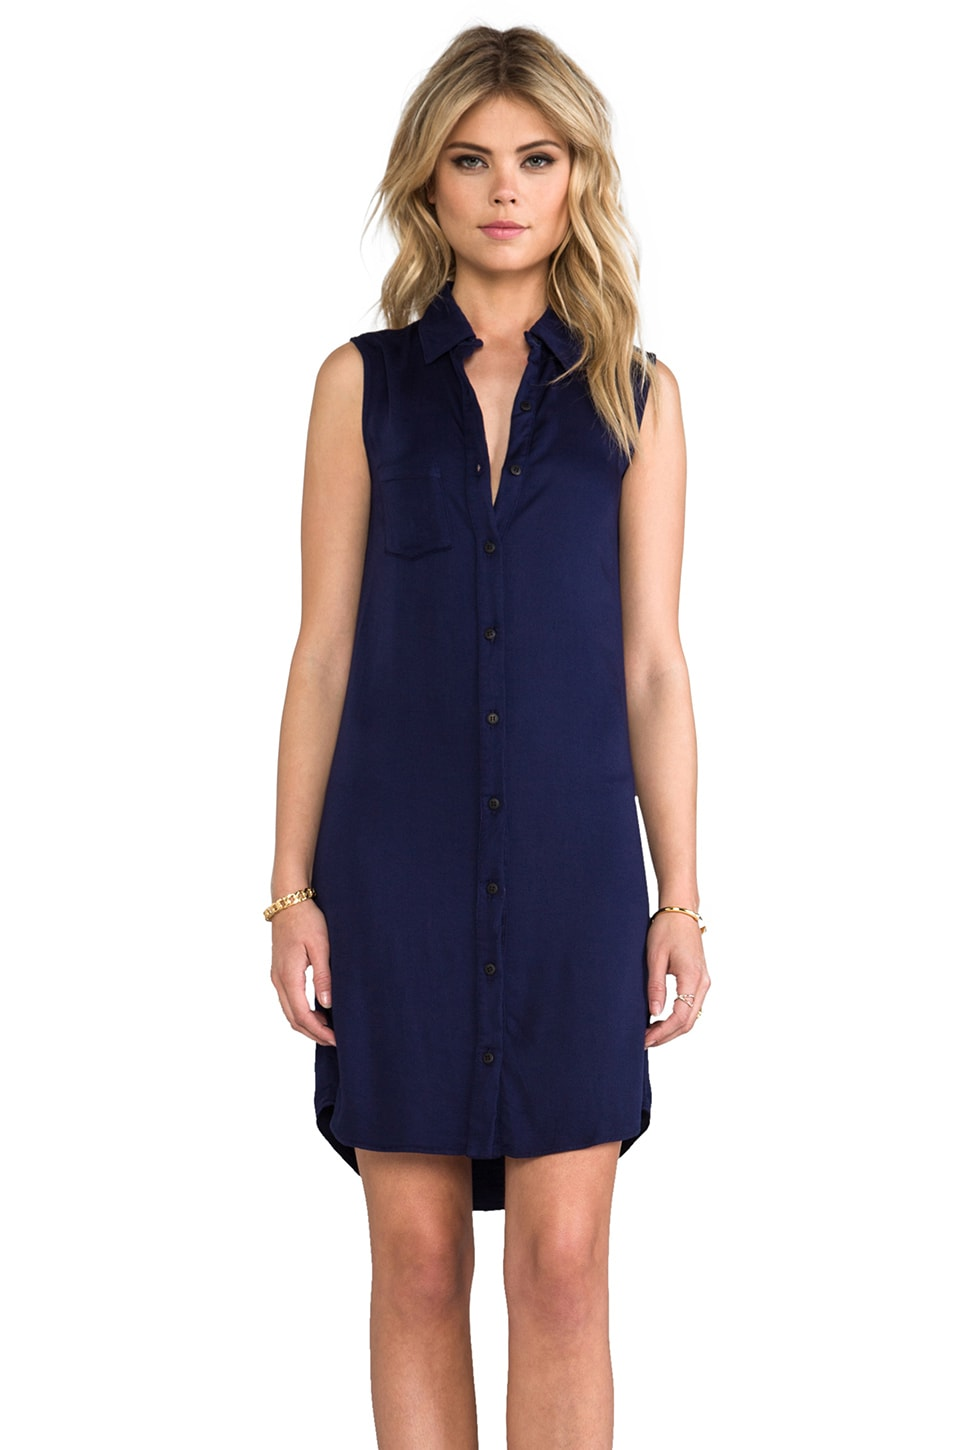 Kain O'Connor Dress in Navy